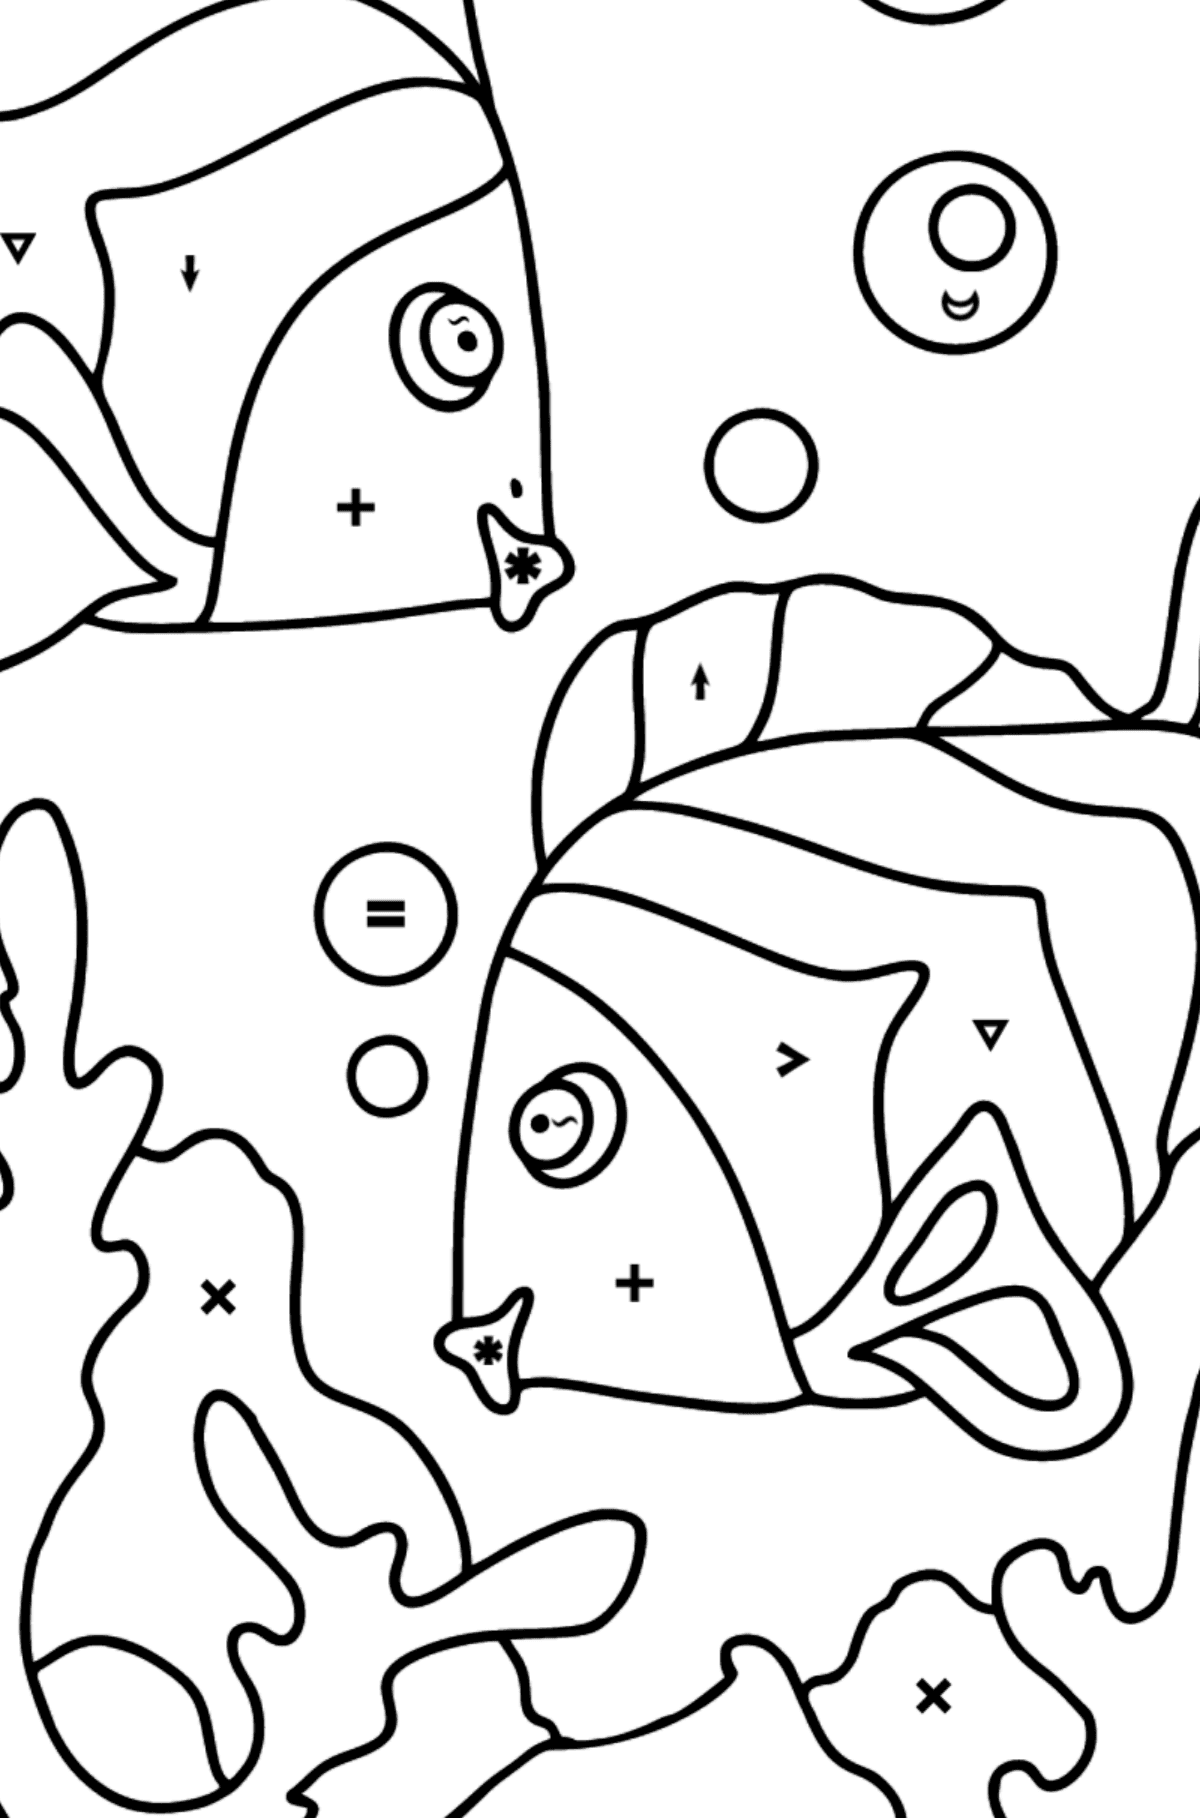 Coloring Page - Fish are Swimming Together - Coloring by Symbols for Kids